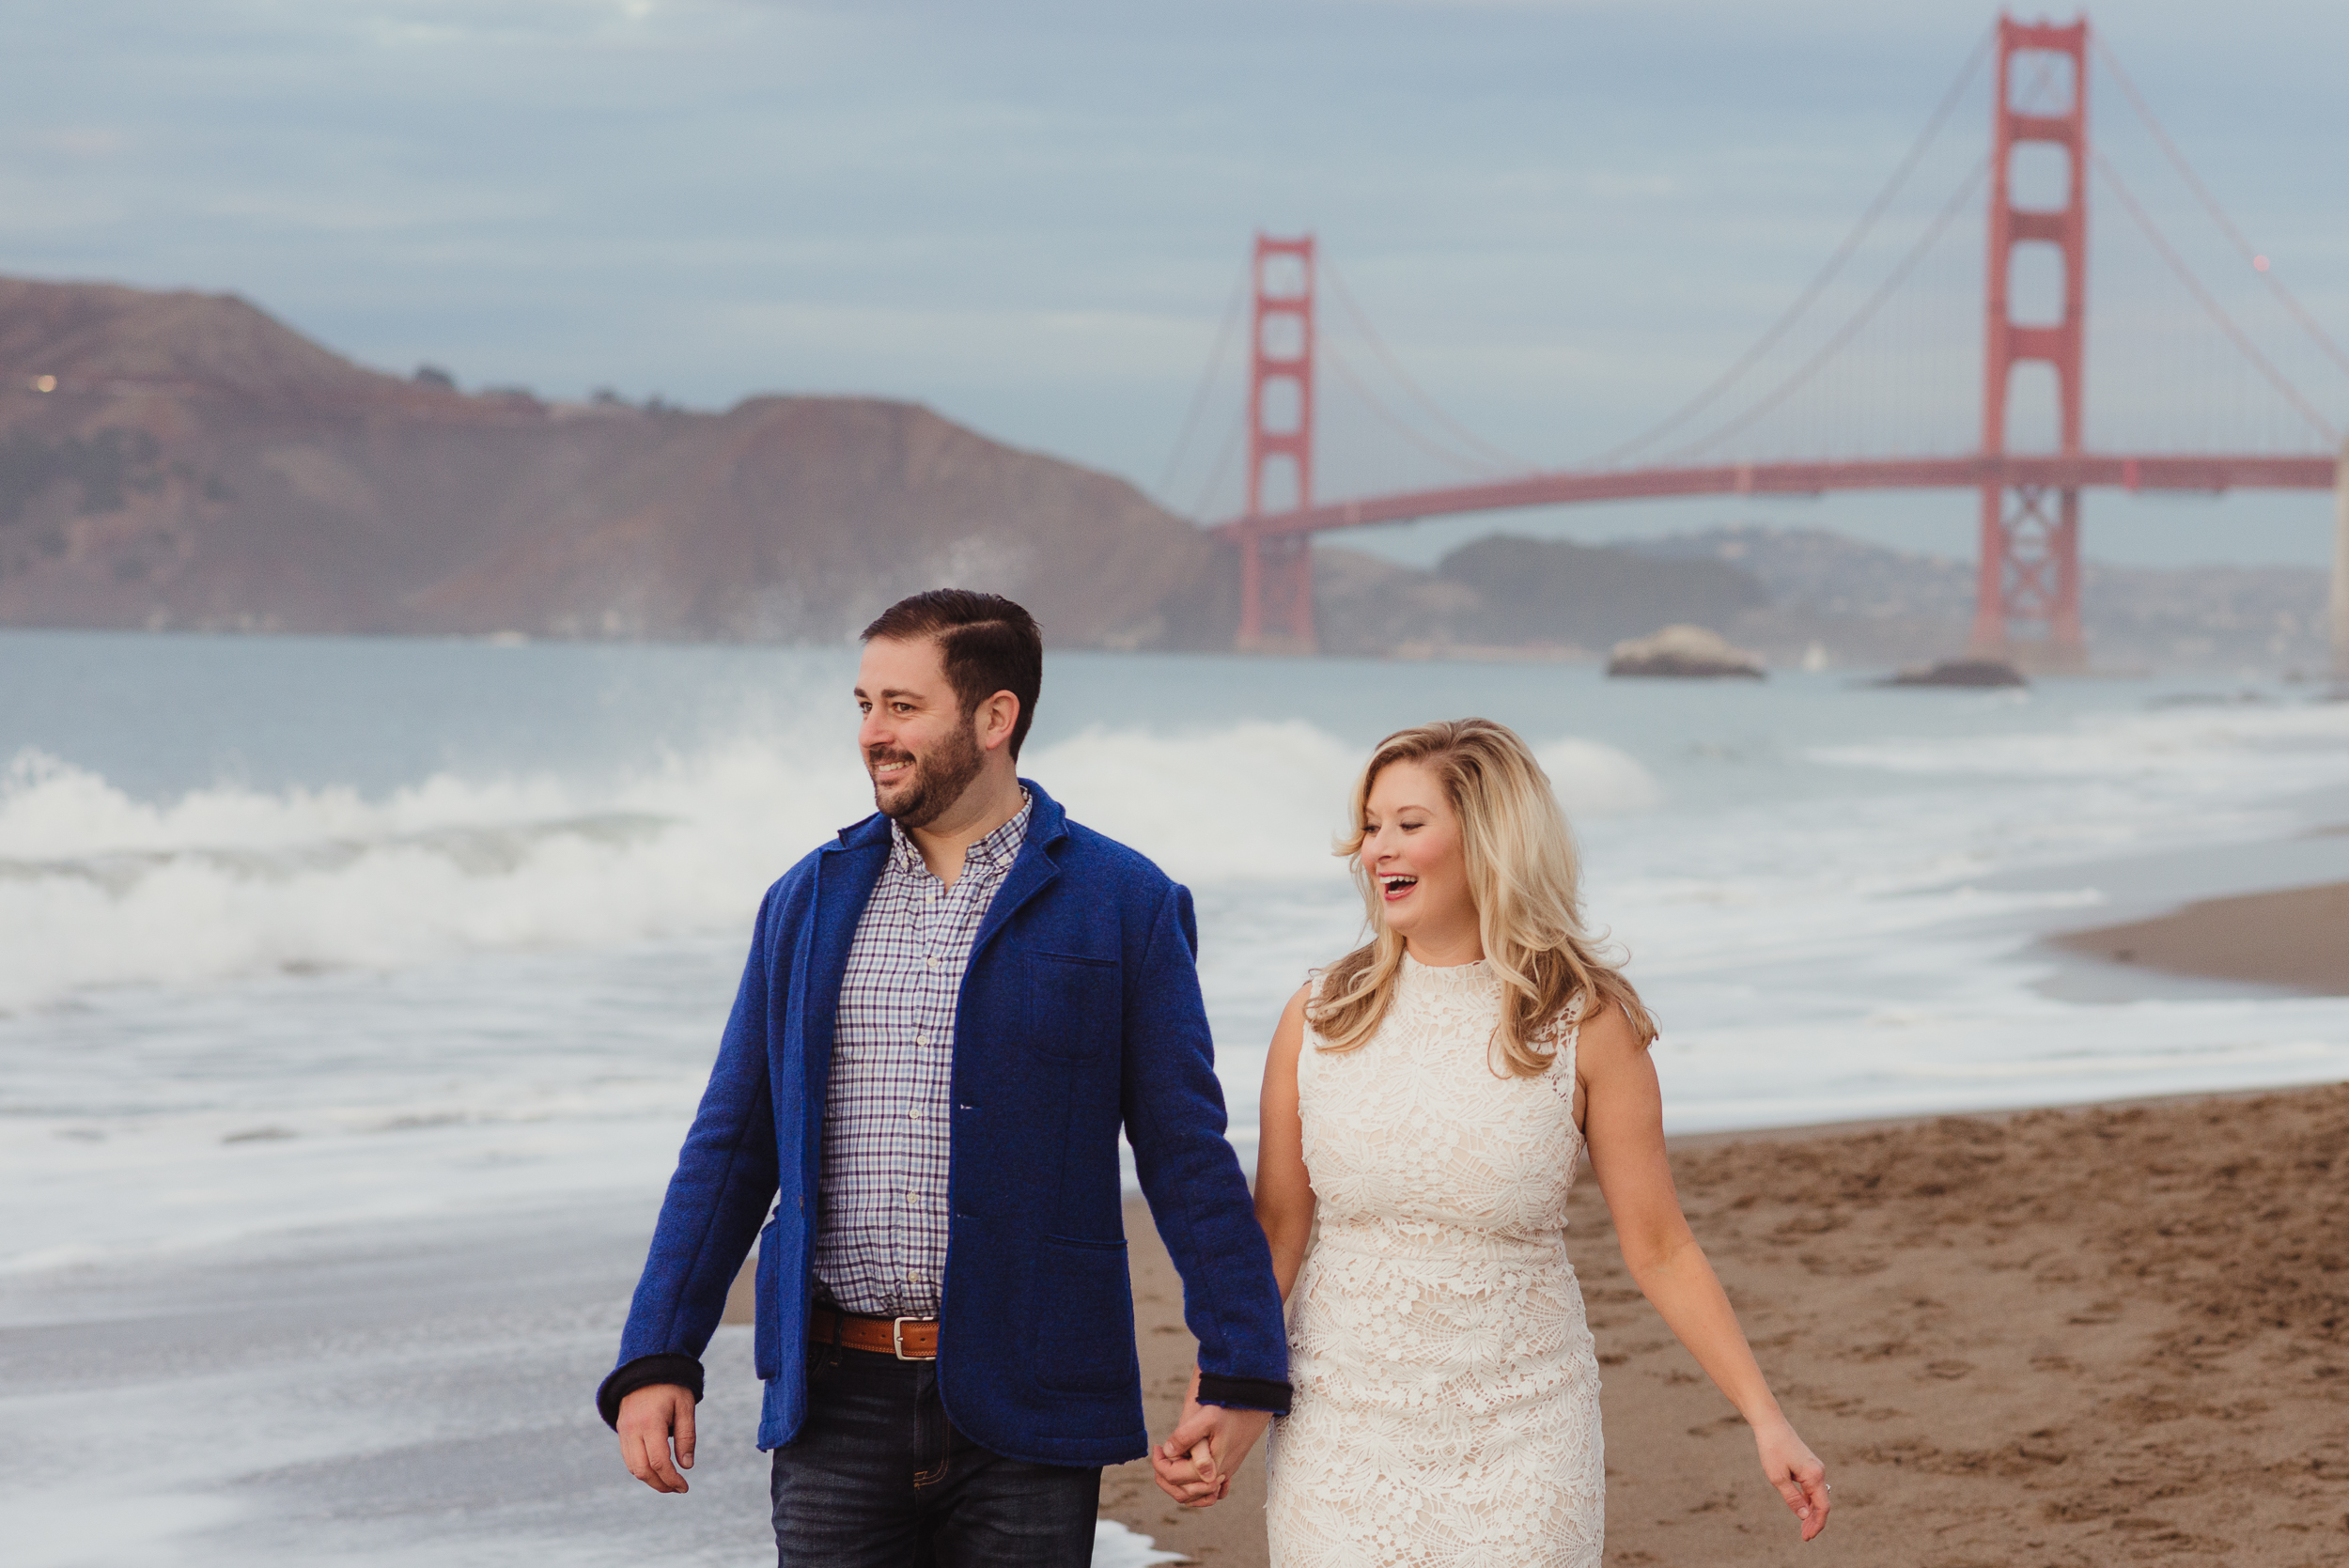 presidio-woodline-baker-beach-SF-engagement-session-vivianchen-074.jpg